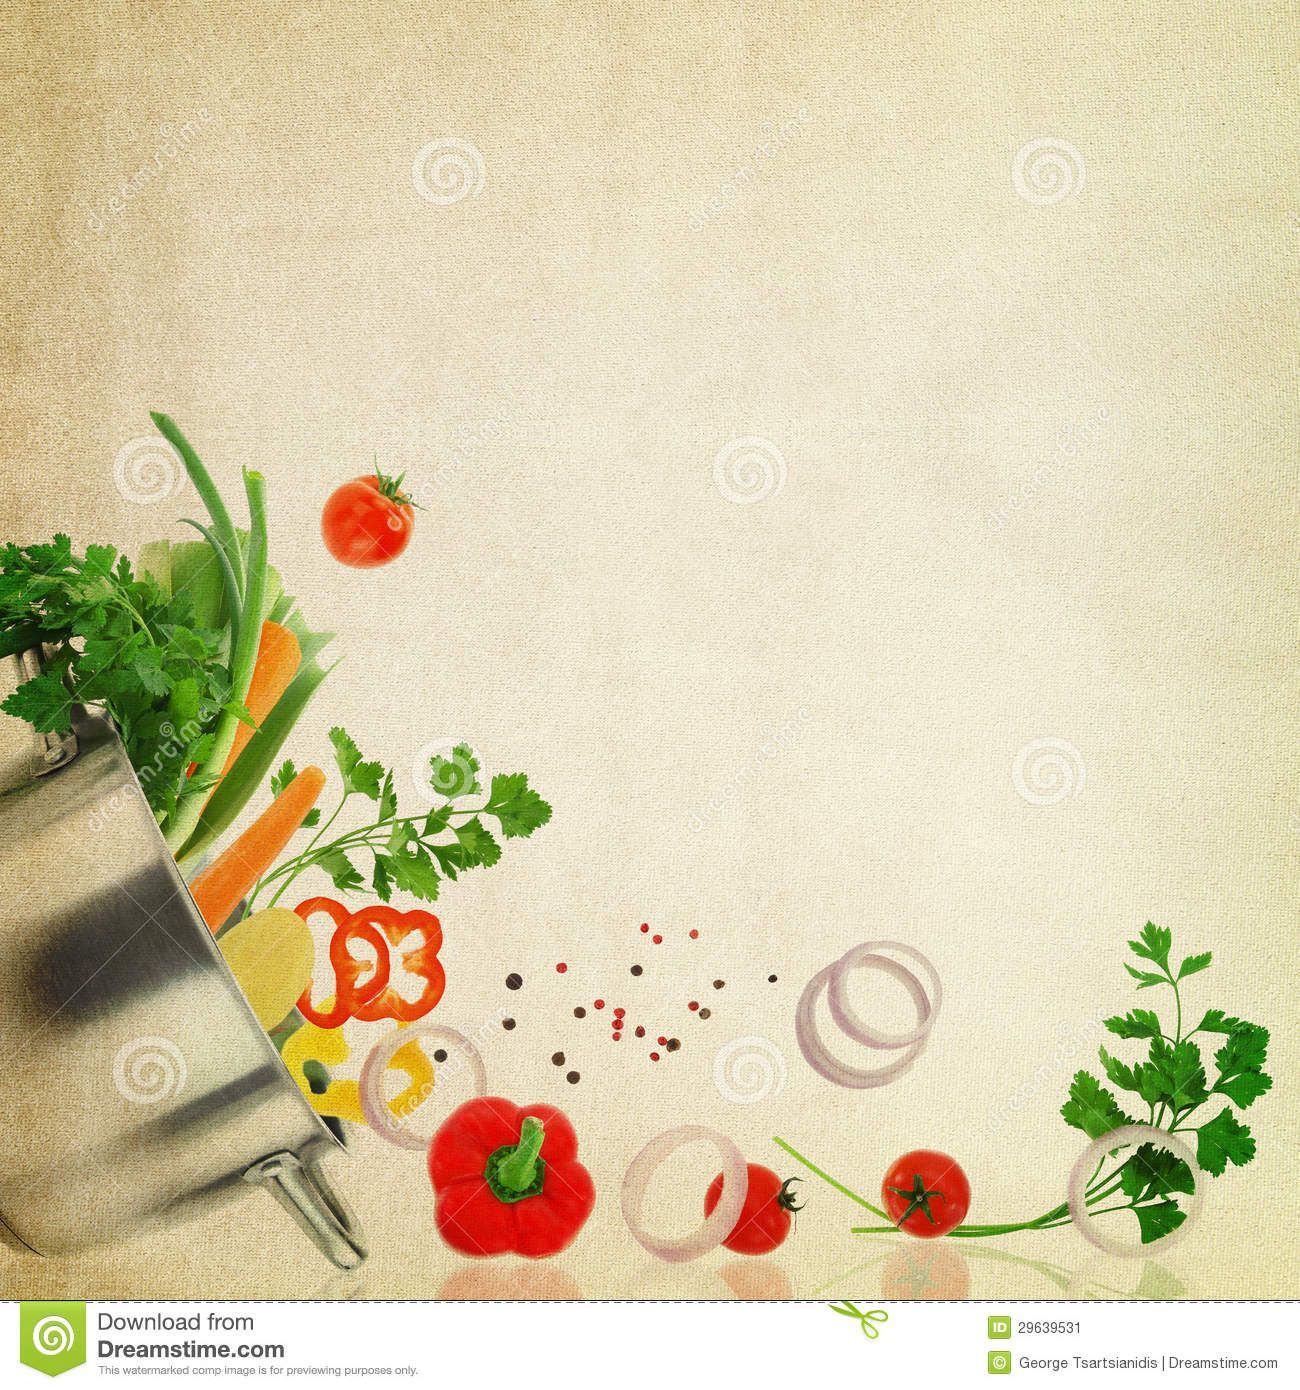 cookbook cover template free download - Google Search | DIY: Vision ...